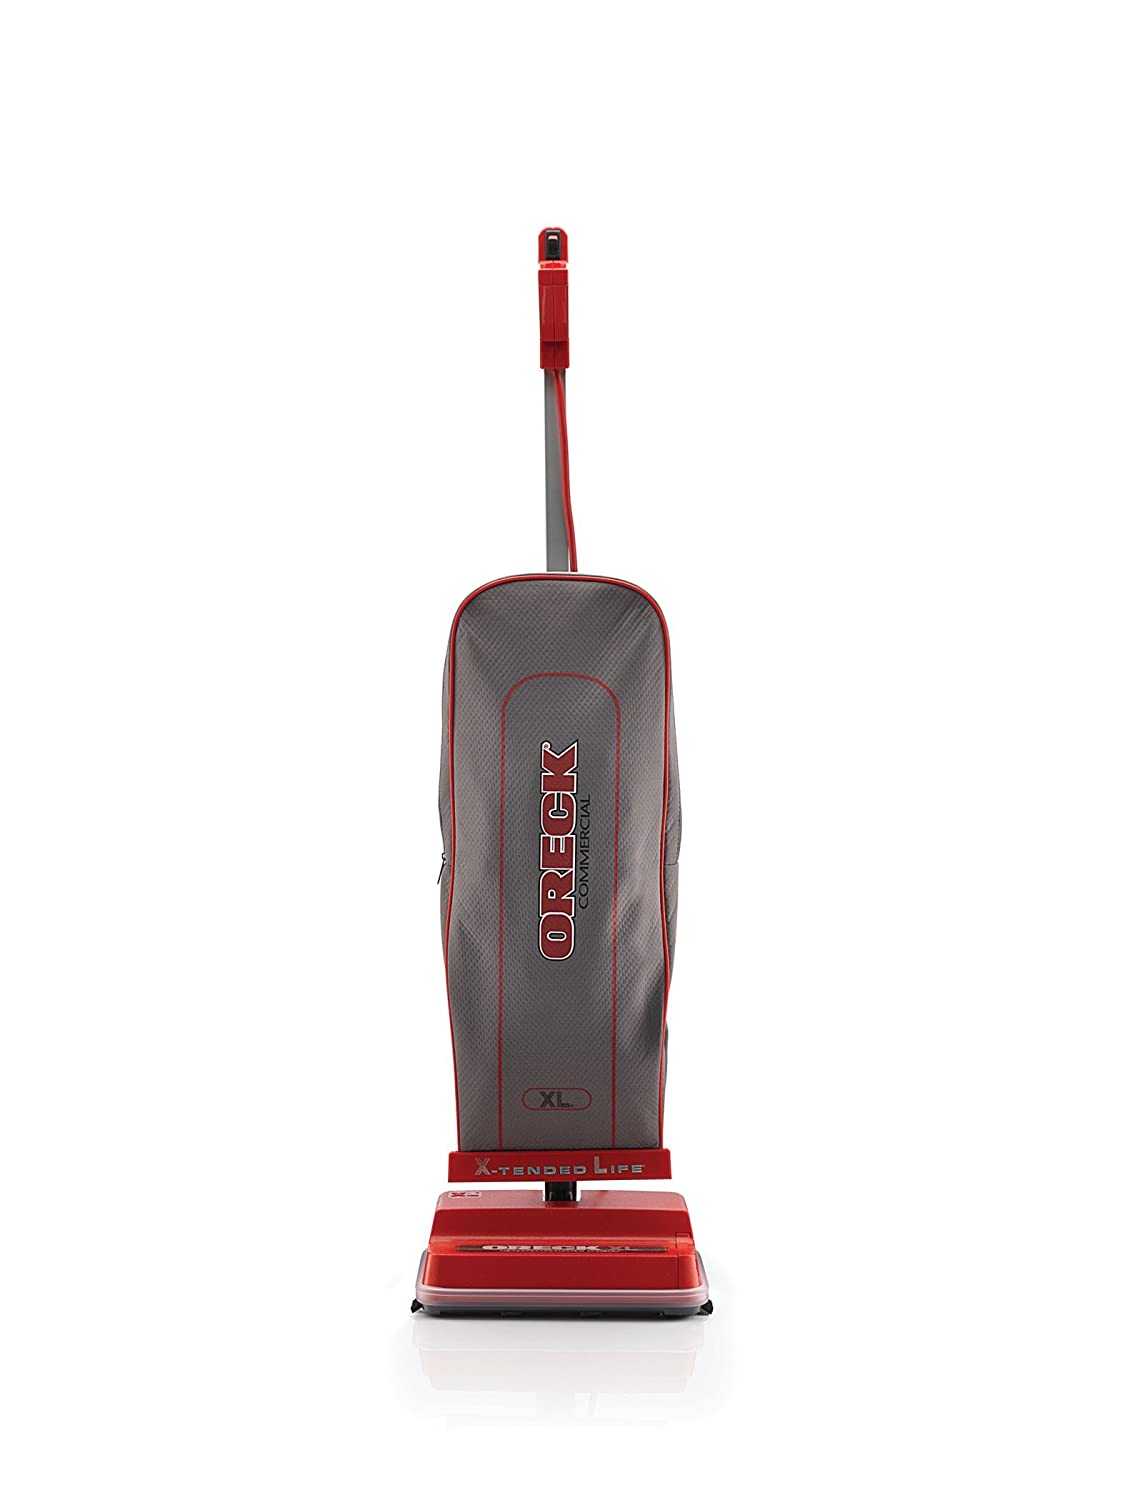 Shop for oreck vacuum cleaner online at Target. Free shipping & returns and save 5% every day with your Target REDcard.